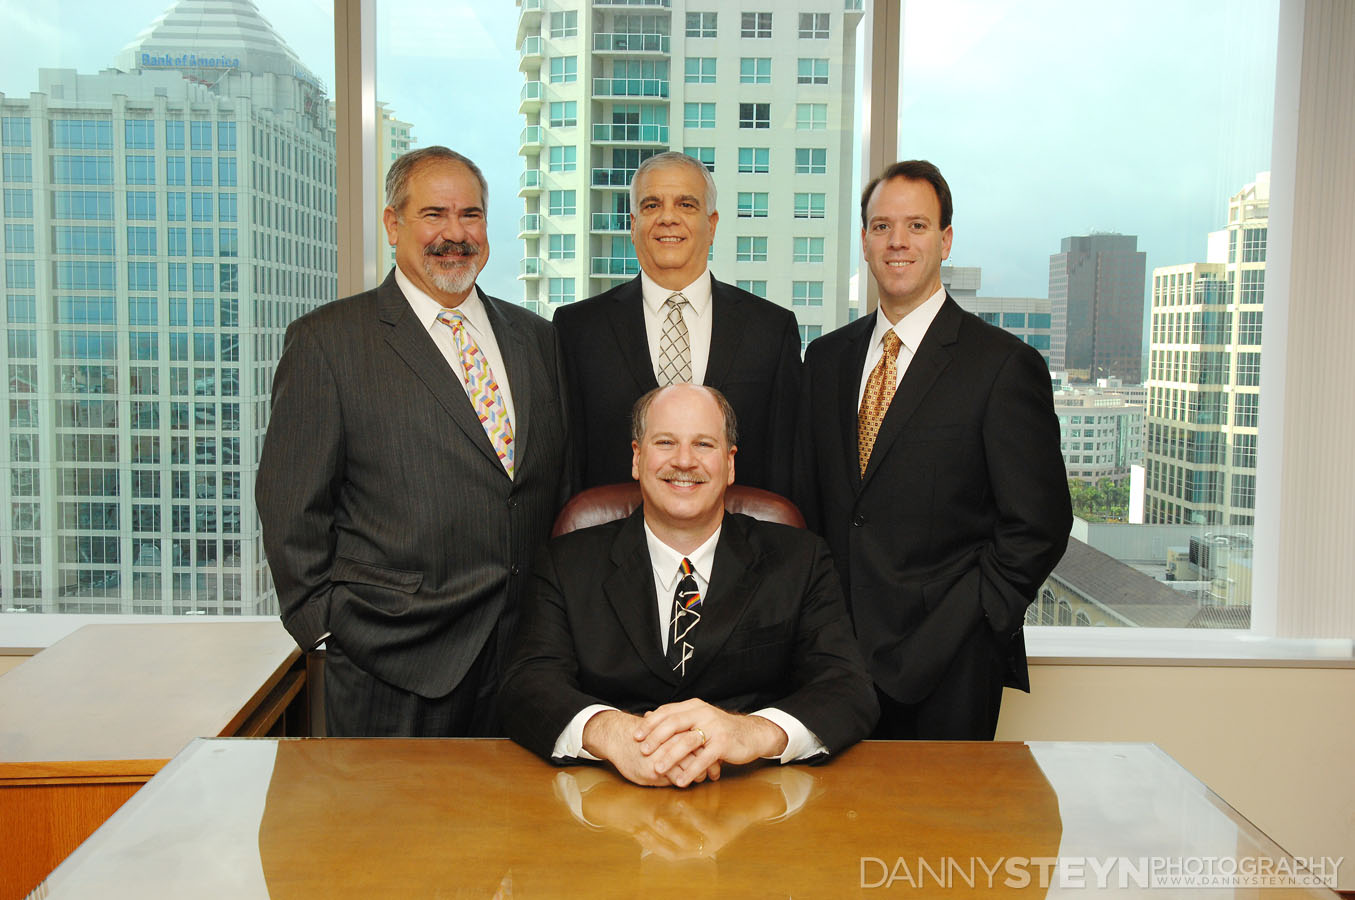 executive portraits photography fort lauderdale